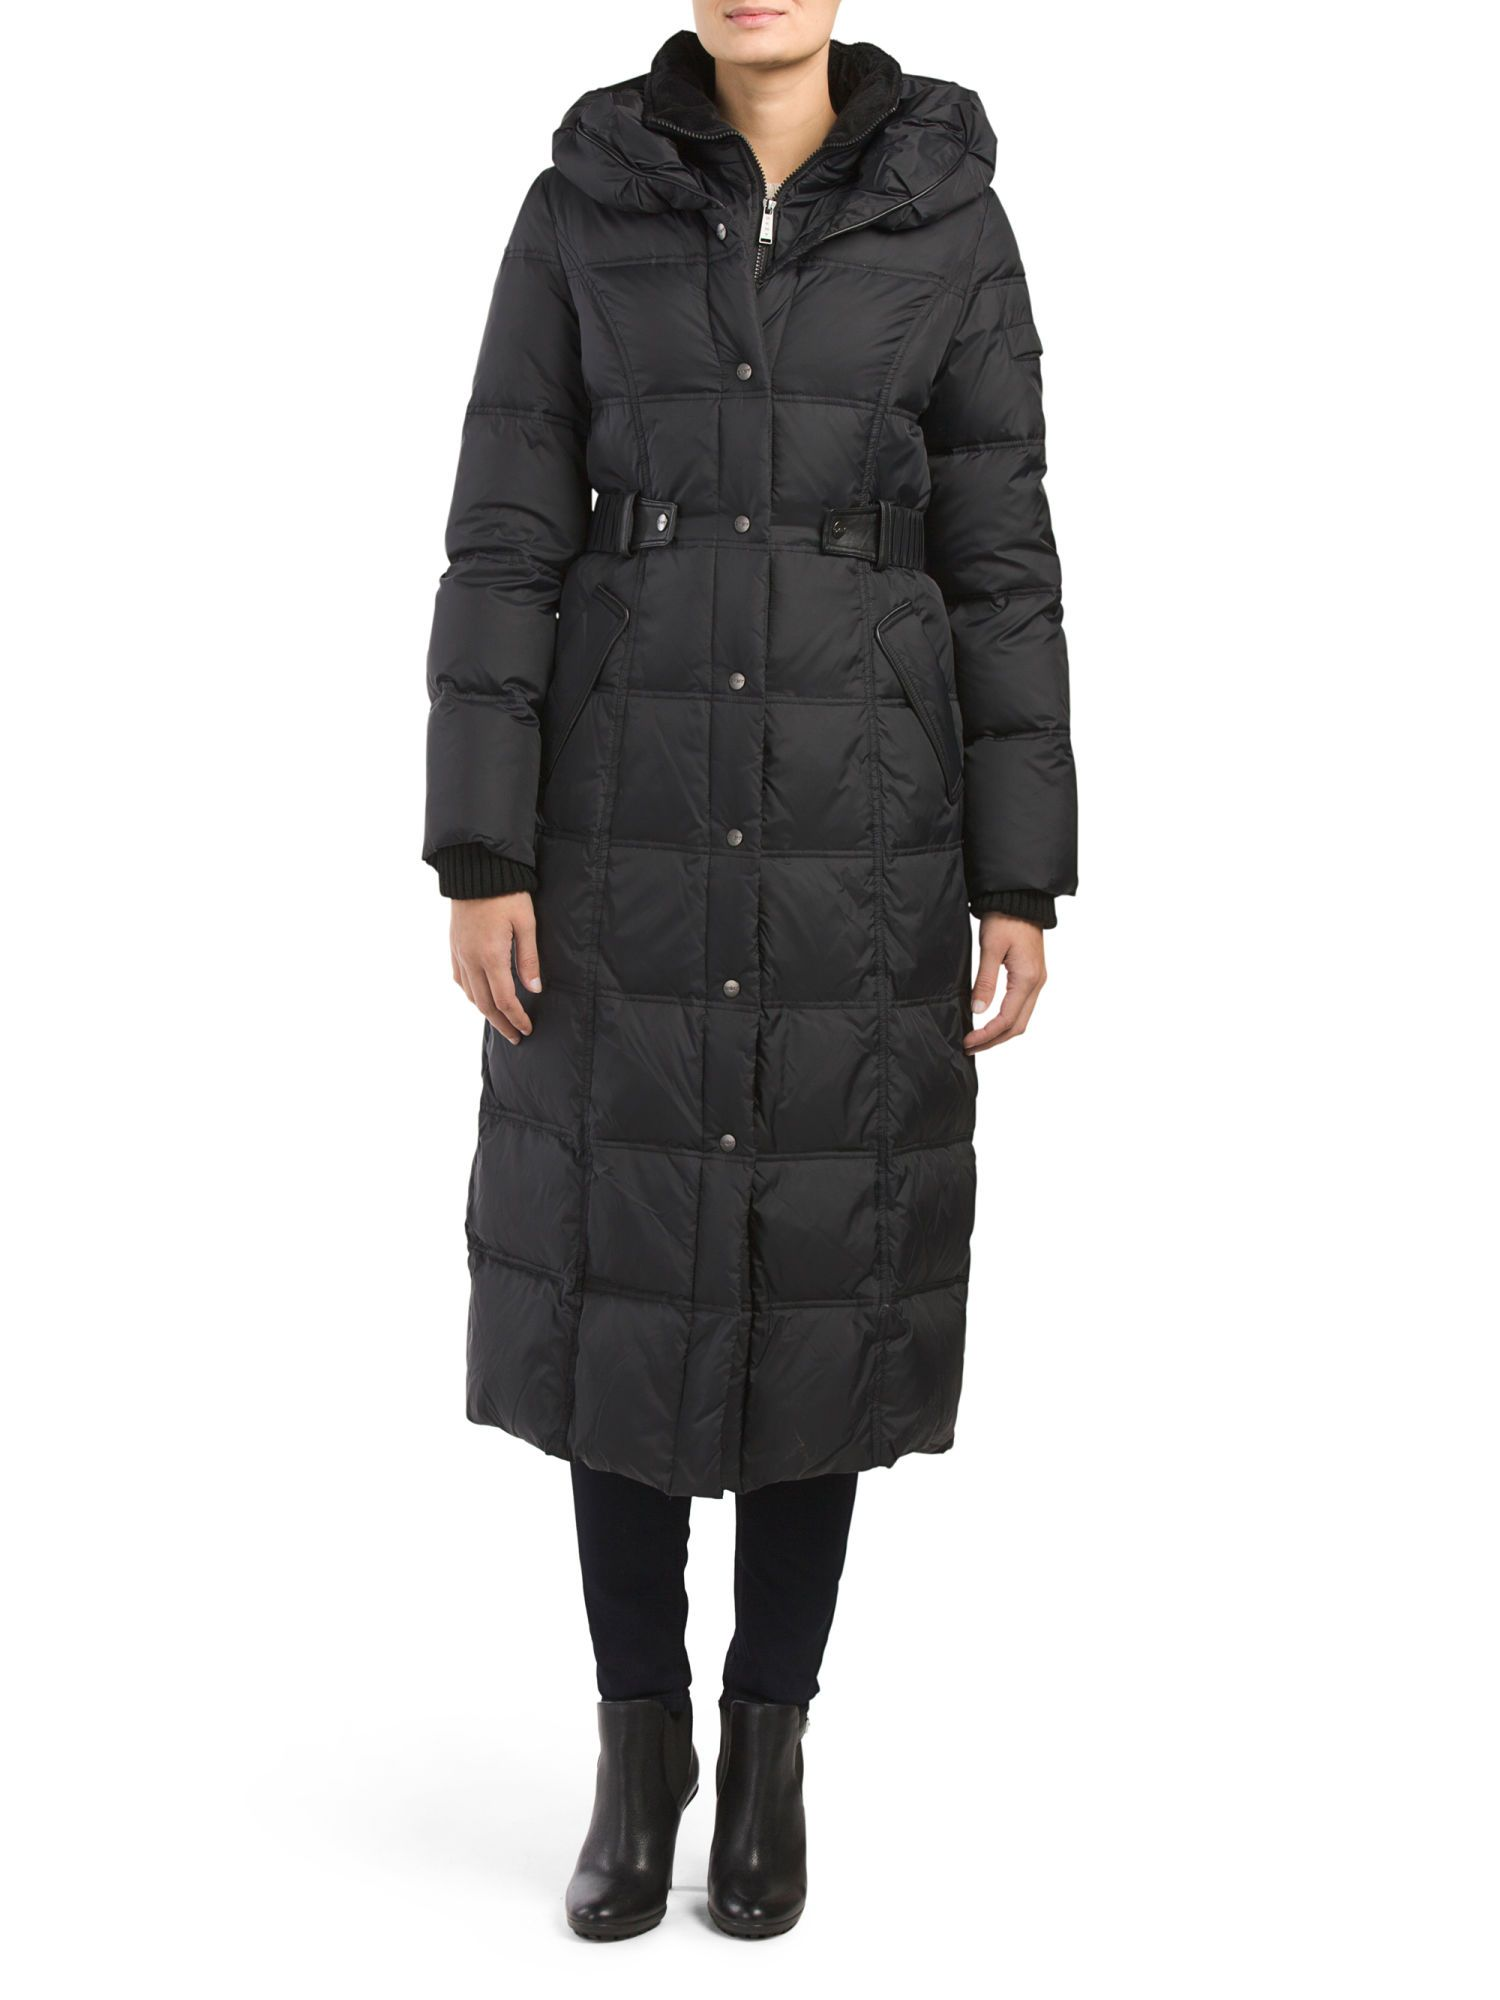 Shop Tjmaxx Com Discover A Stylish Selection Of The Latest Brand Name And Designer Fashions All At A Great Value Coat Jackets Maxi Coat [ 2000 x 1500 Pixel ]